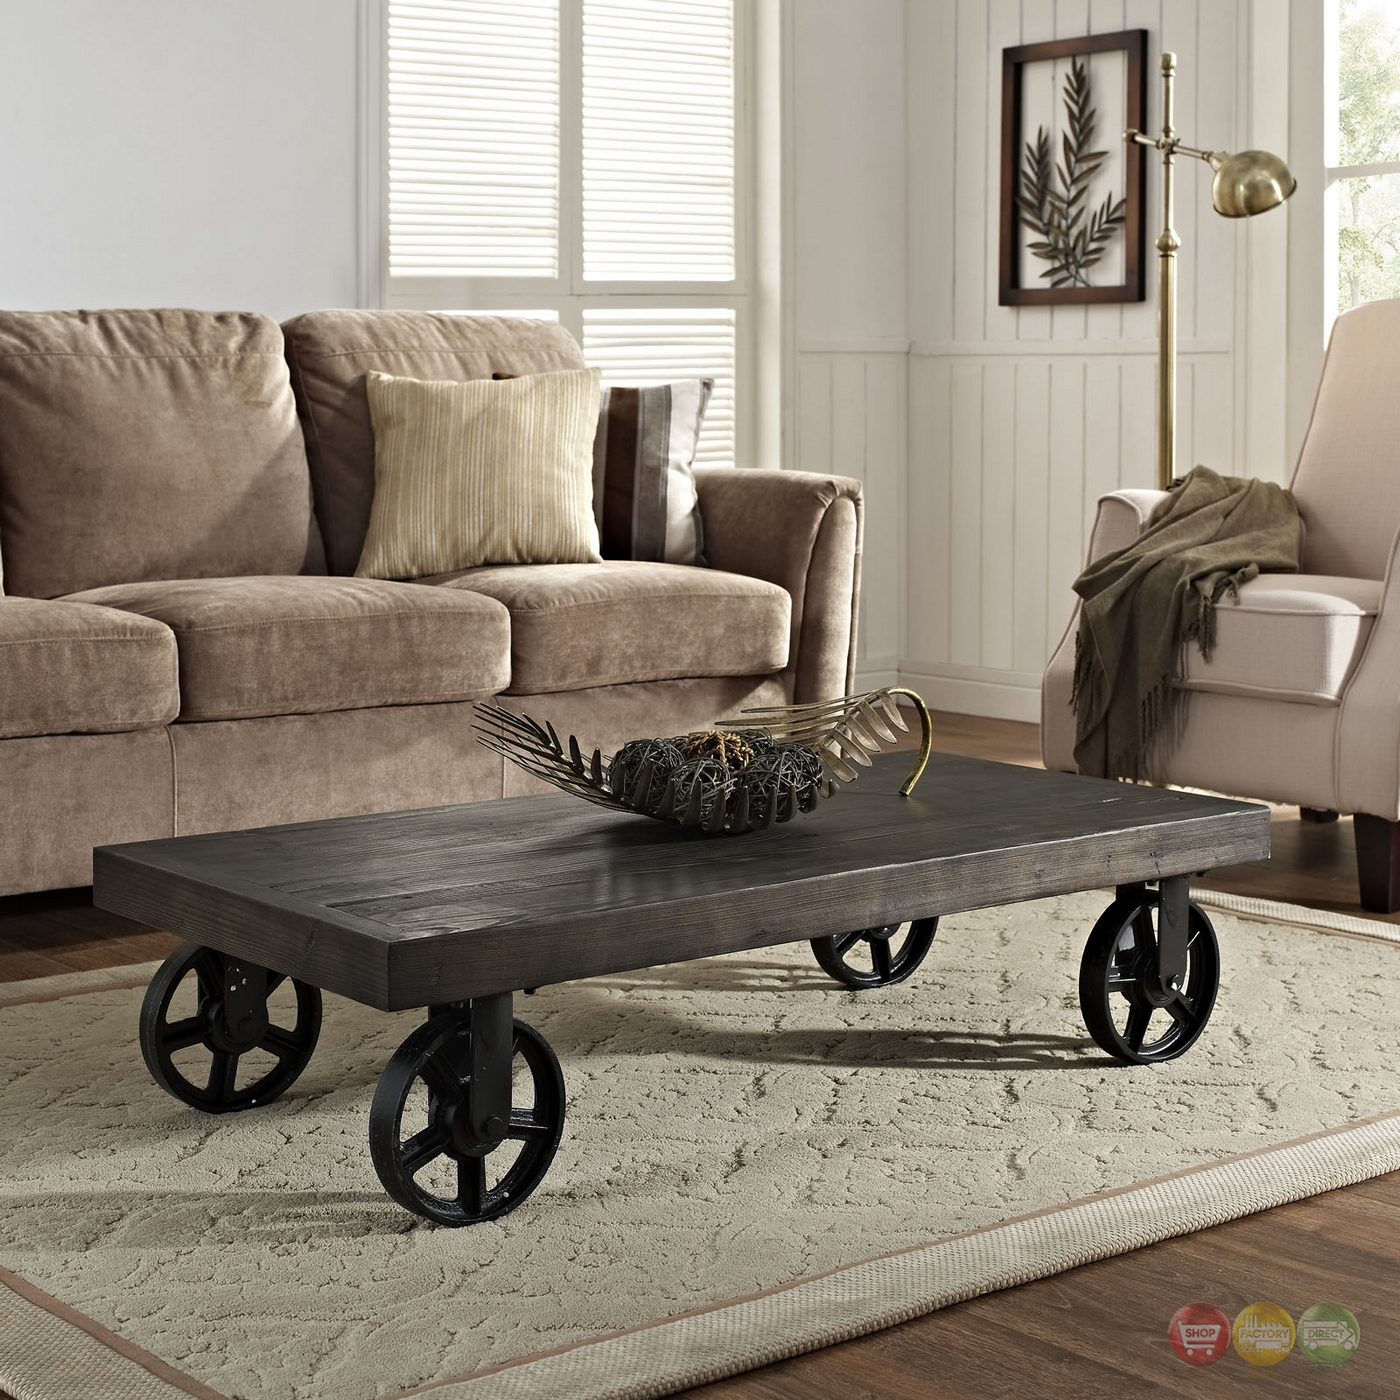 Garrison Industrial Solid Pine Wood Coffee Table With Metal Wheel Casters Black